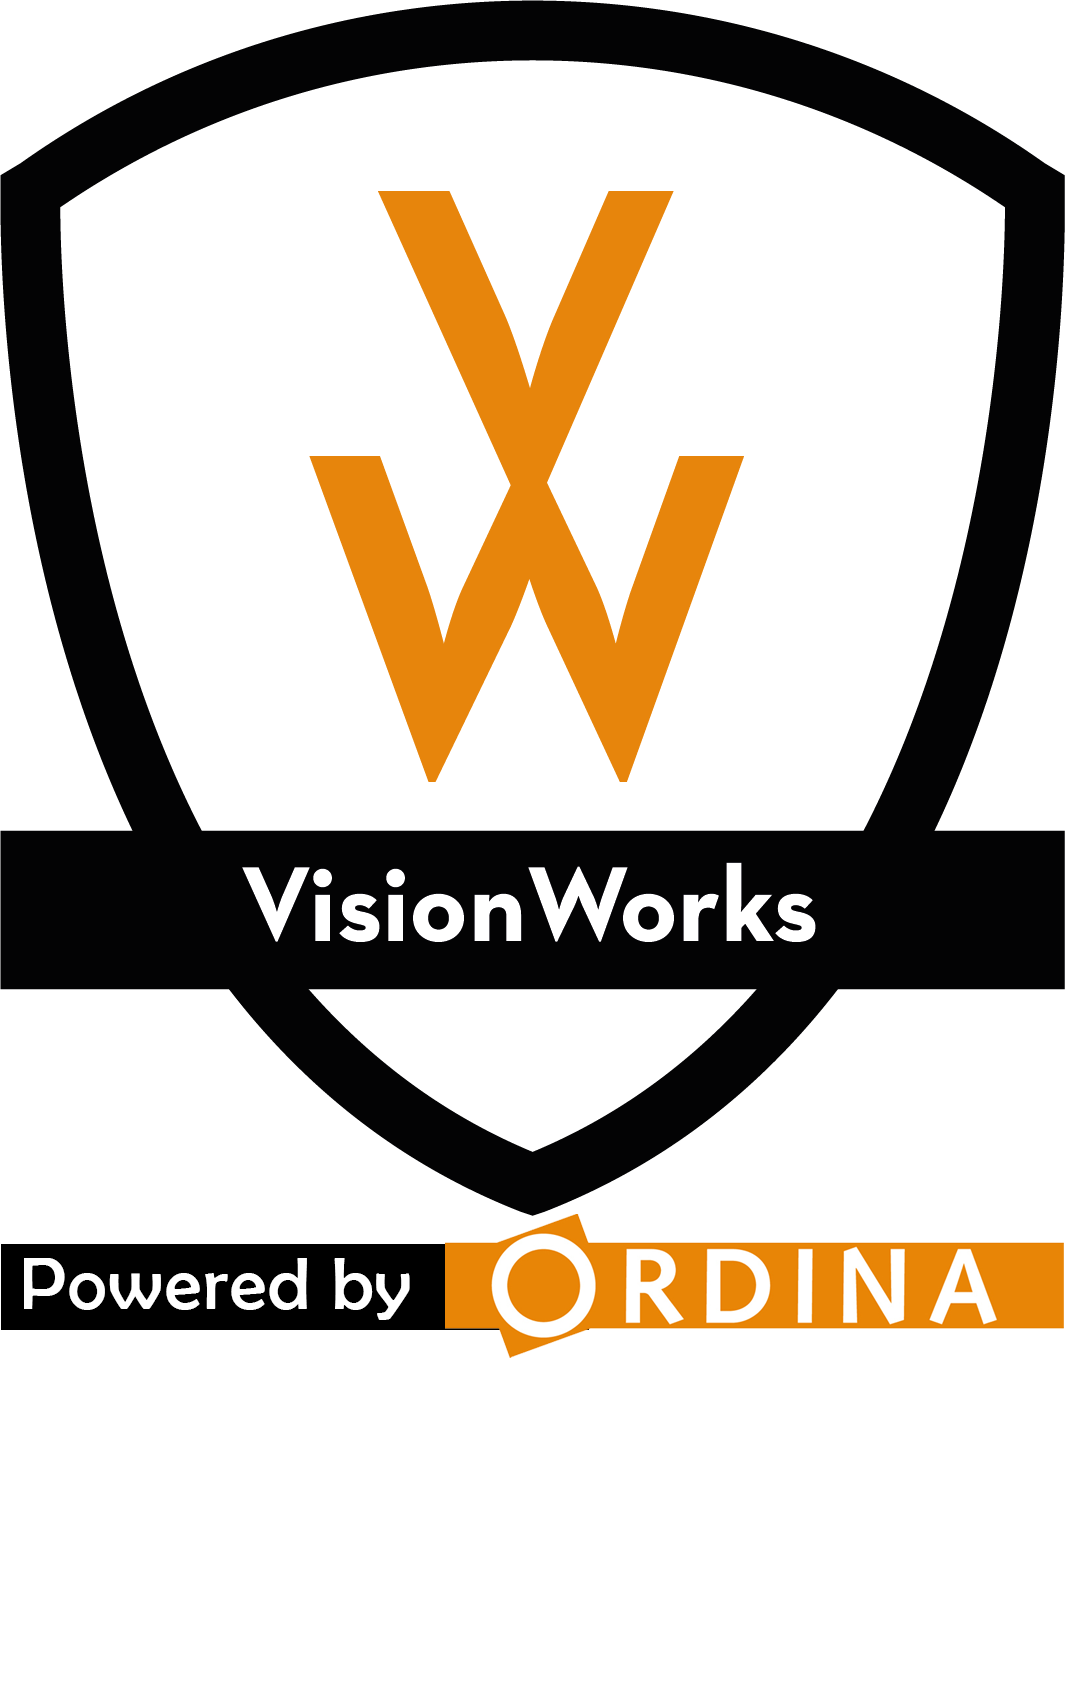 VisionWorks - On April 30, Make a Dashboard in a Day with